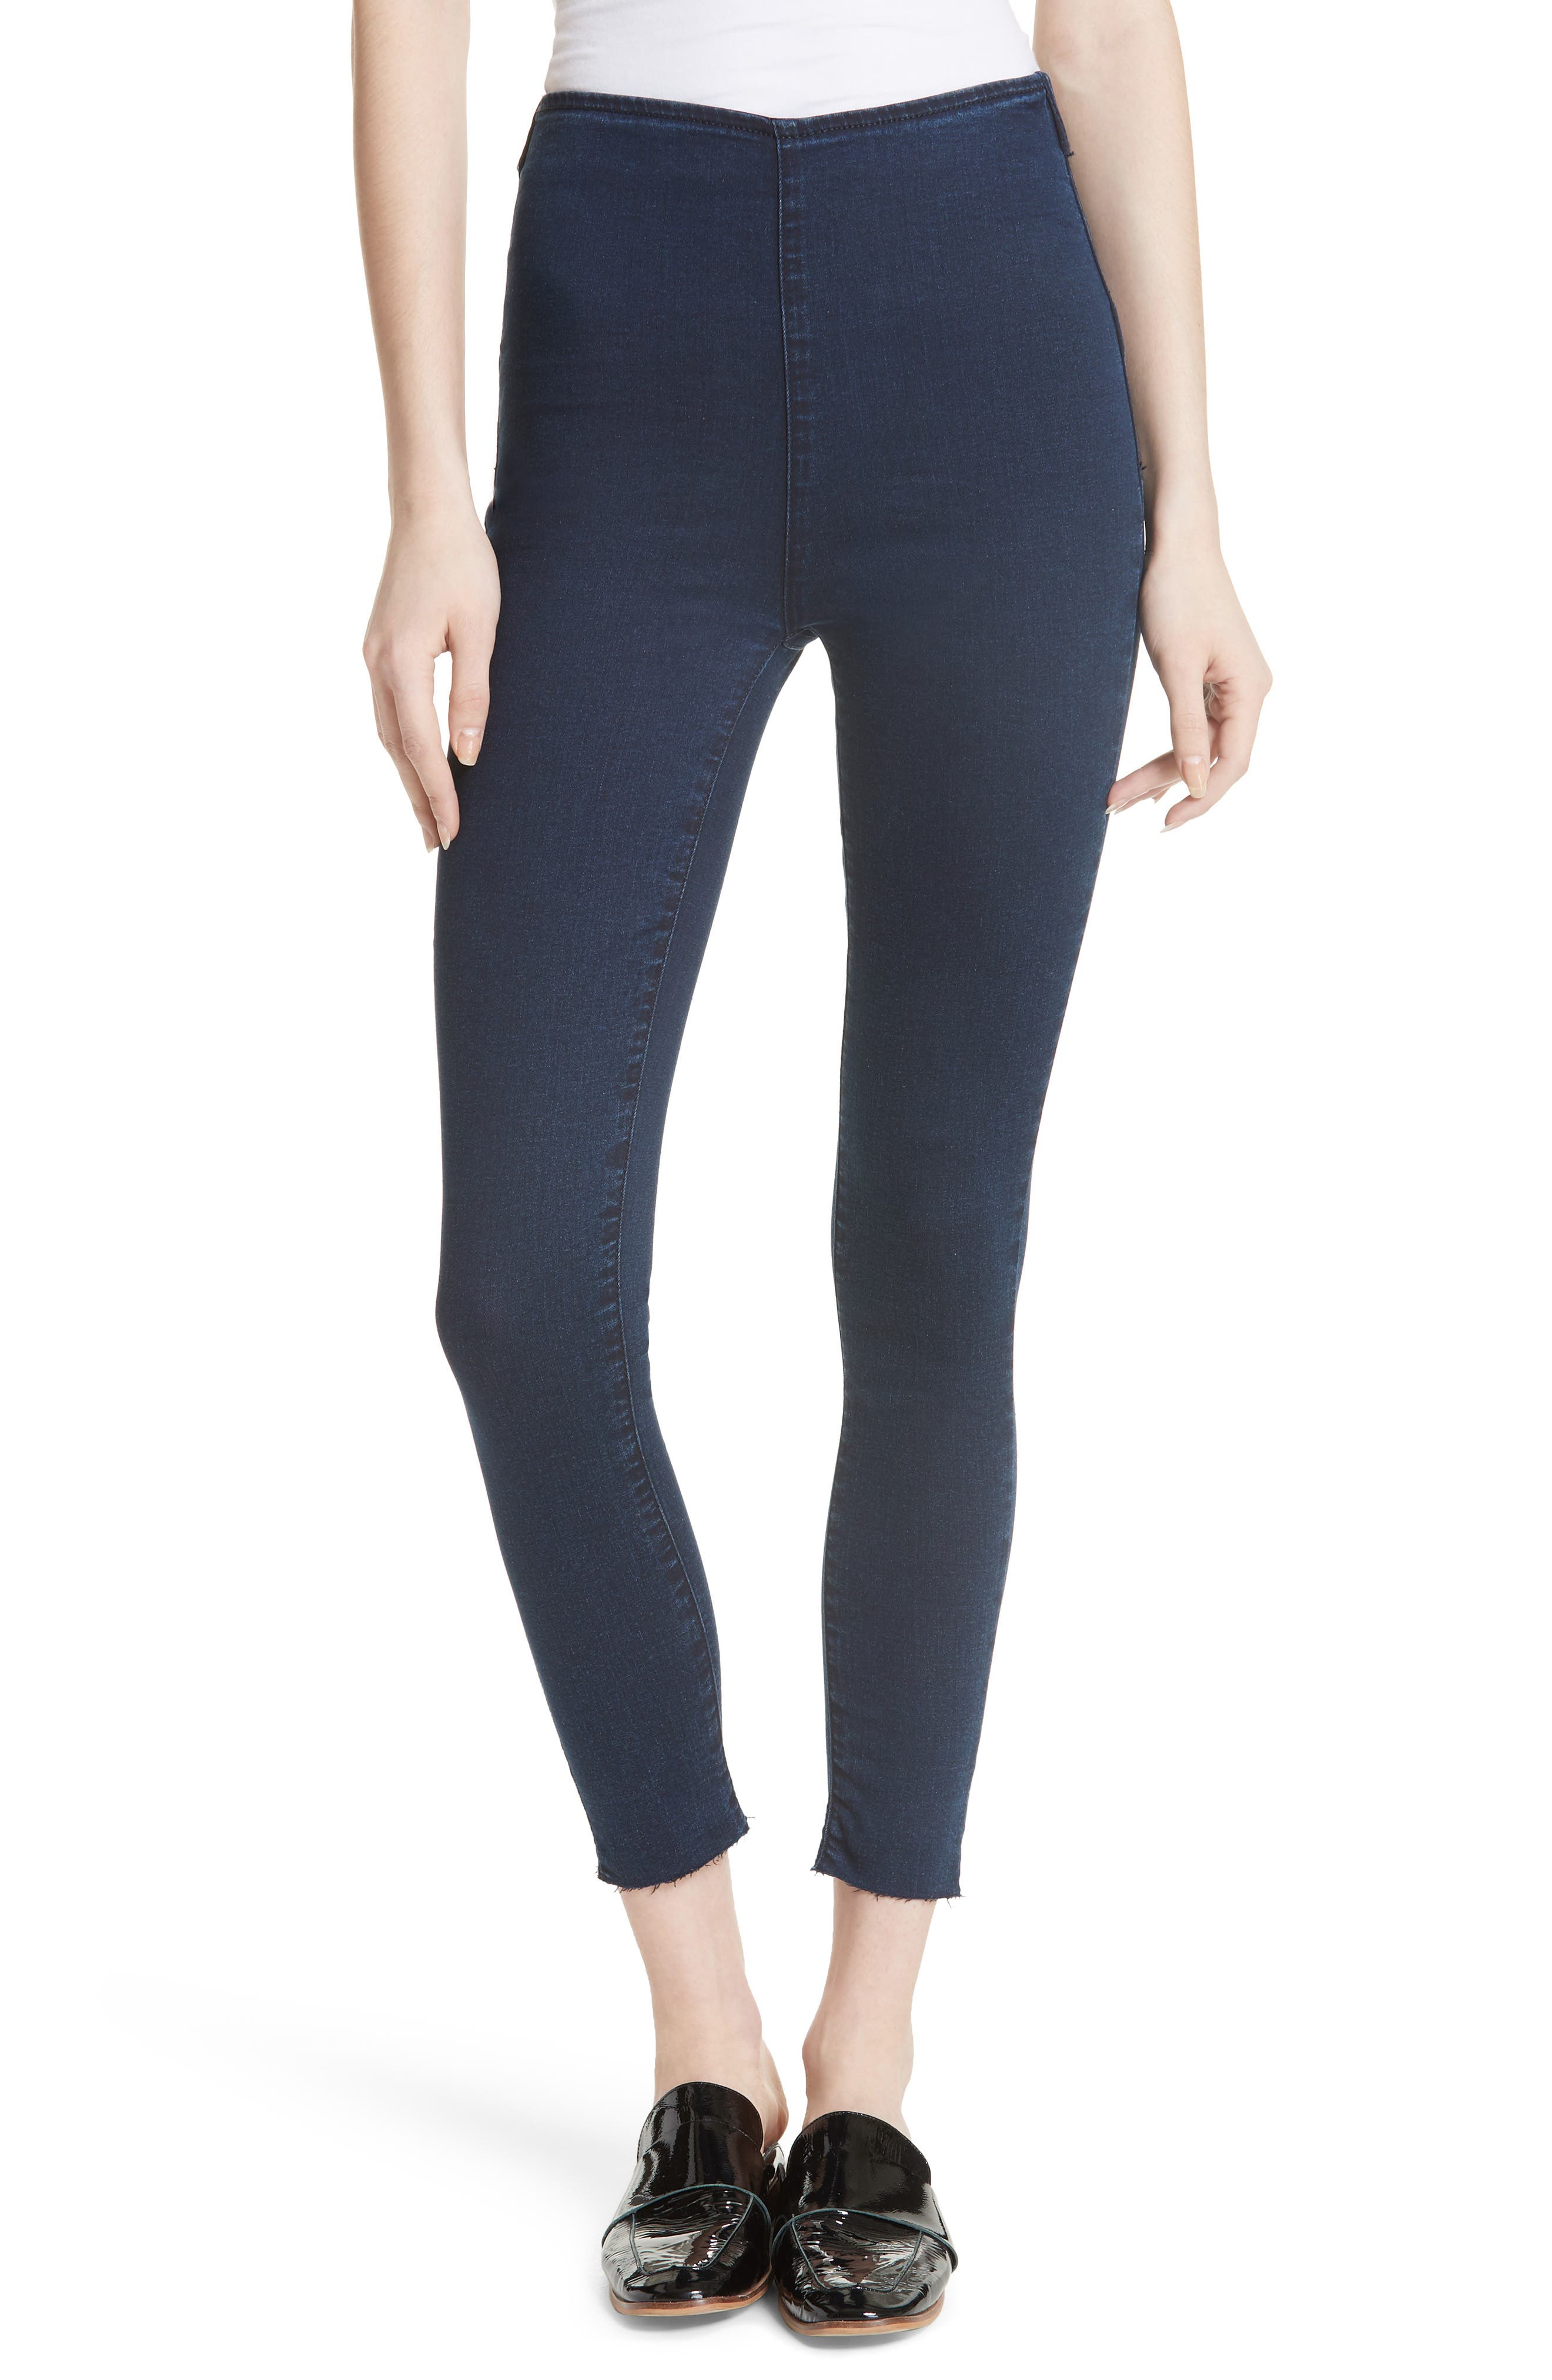 Easy Goes It Leggings,                         Main,                         color, Dark Denim